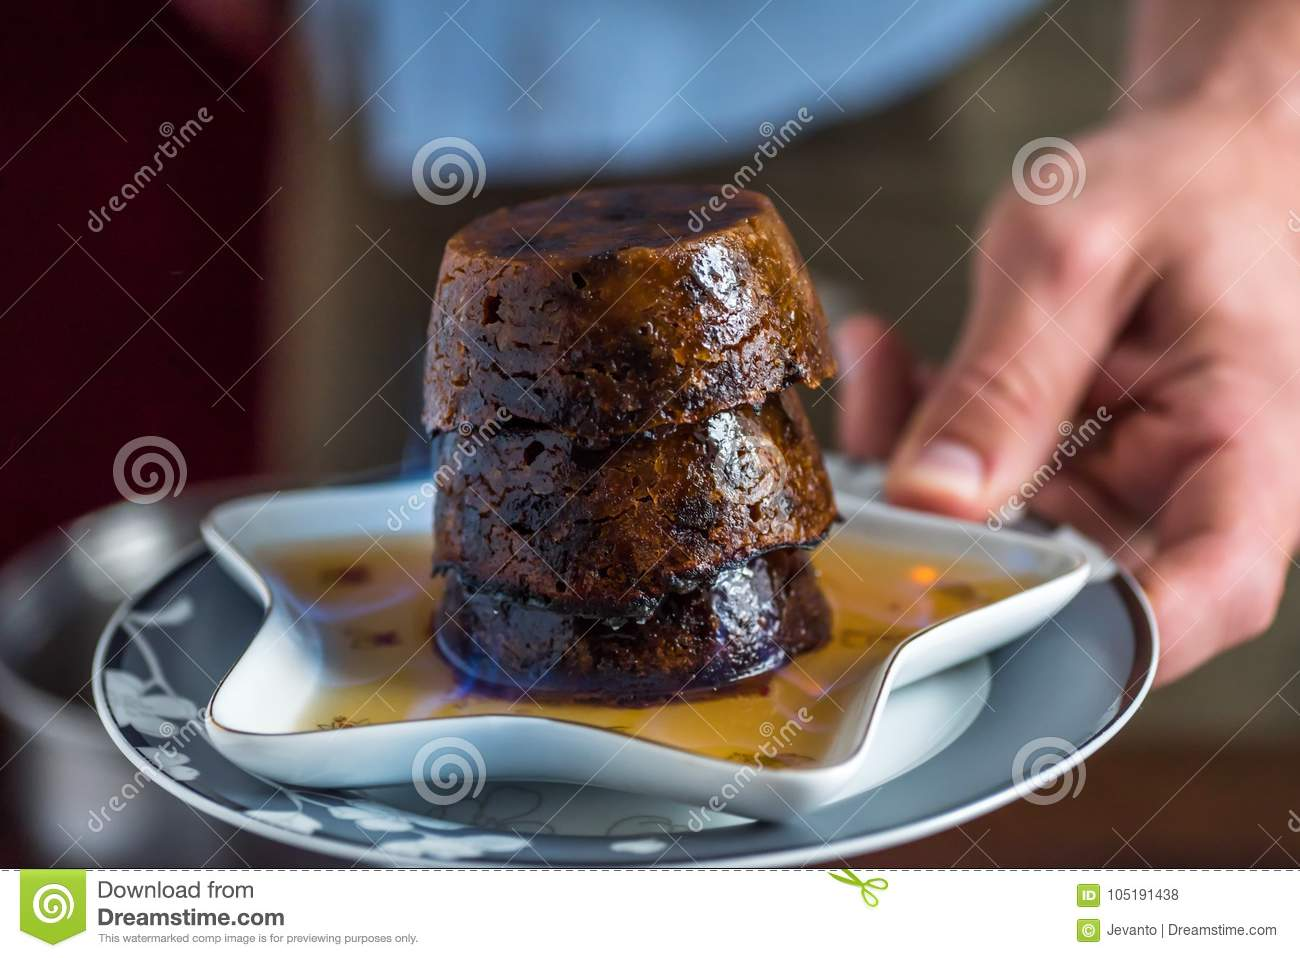 Christmas Pudding On Fire.Male Hands Closeup View Holding Christmas Pudding Burning On